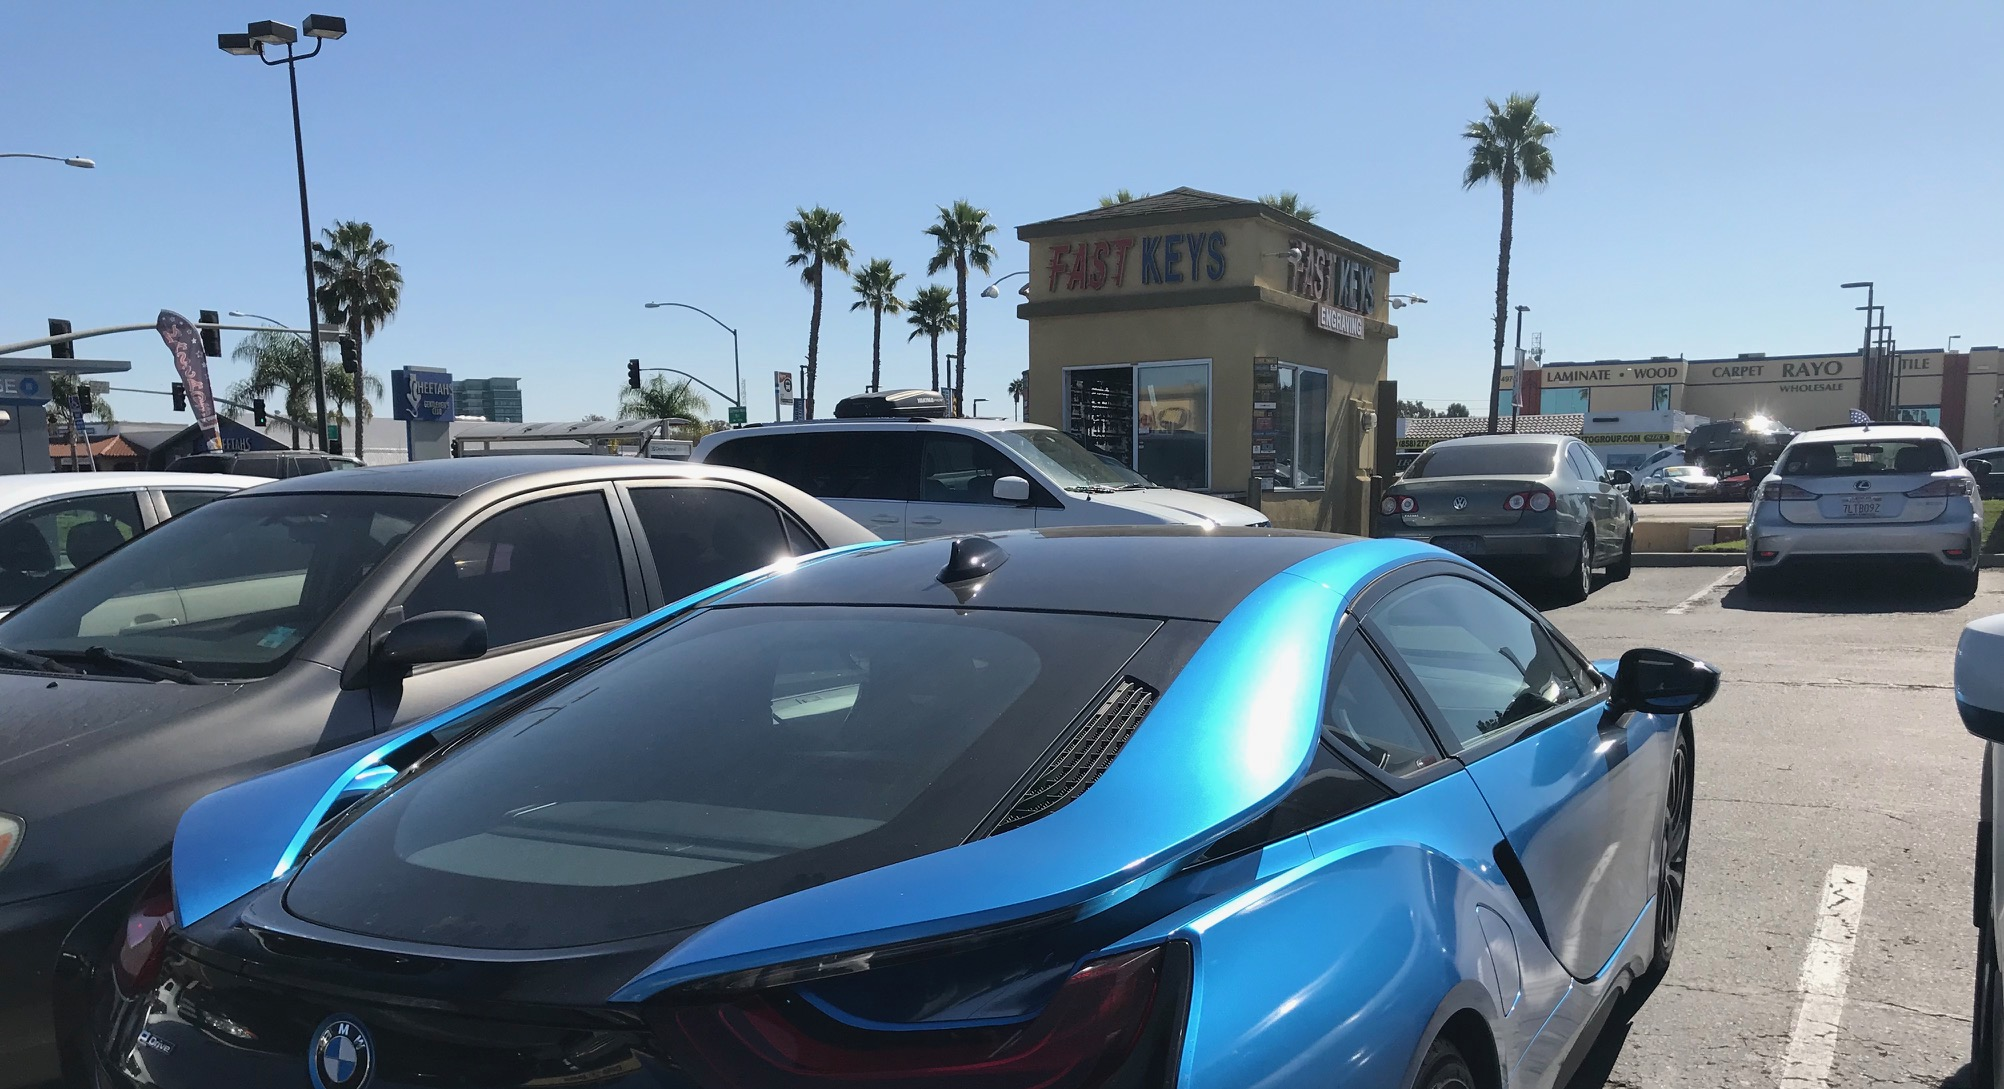 Fast Keys of San Diego is now The Keyless Shop. Car Keys for Less!